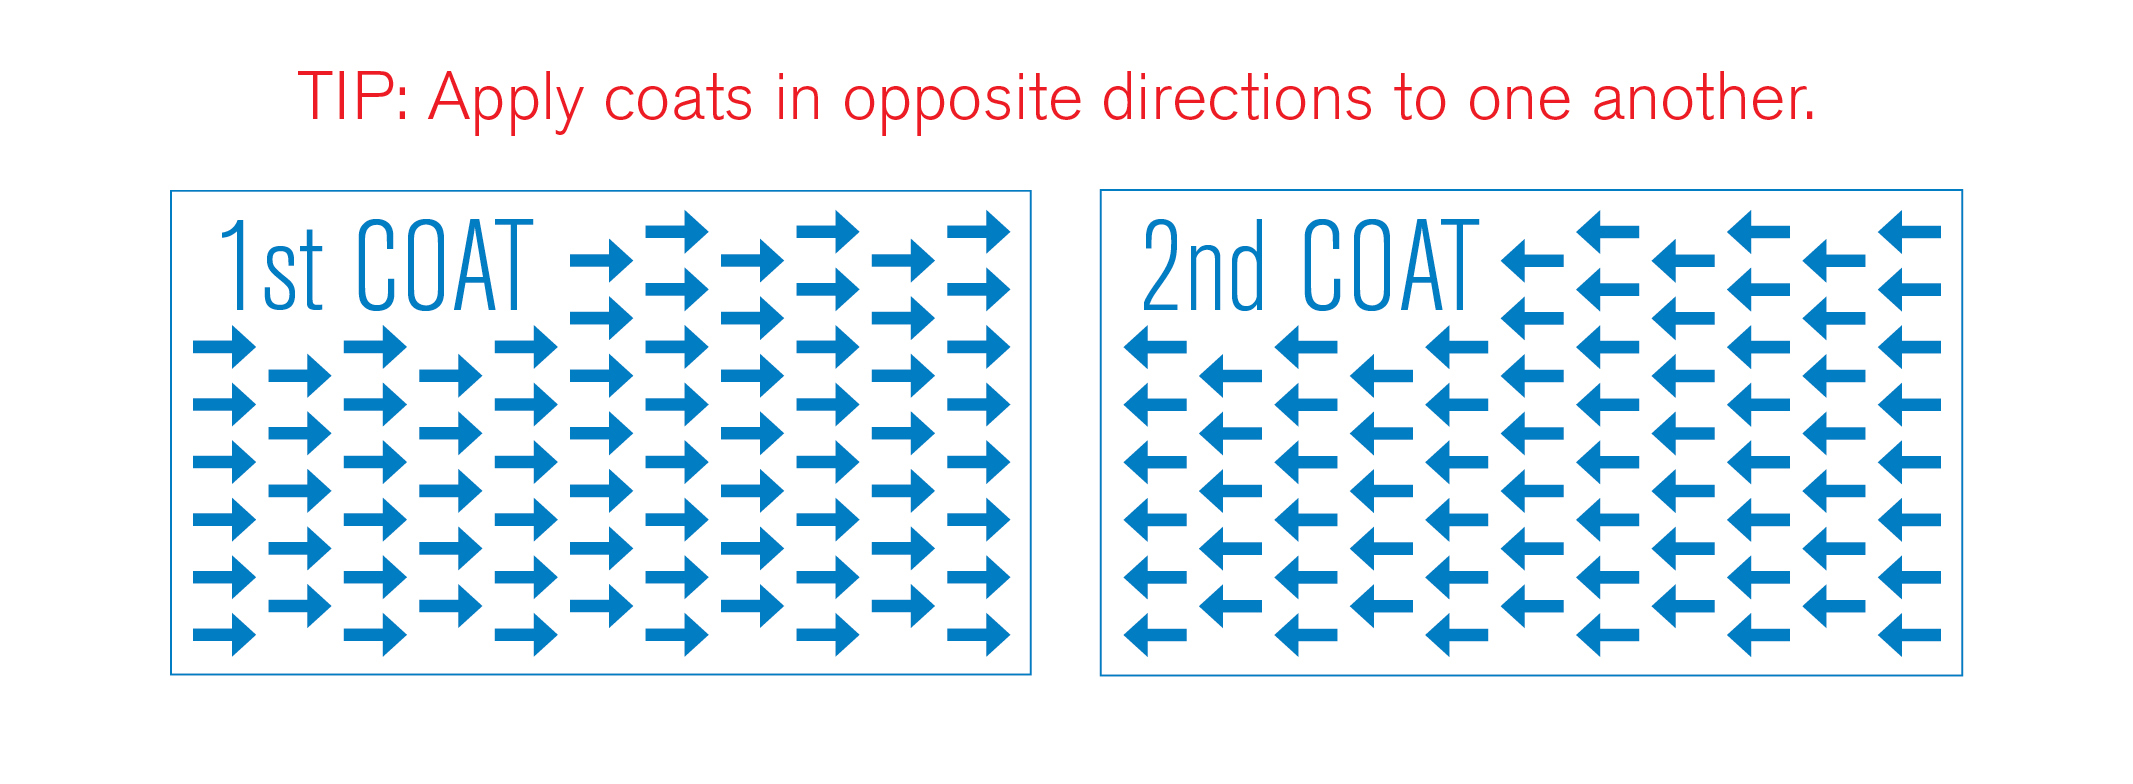 Tip:Apply coats in opposite directions to one another.